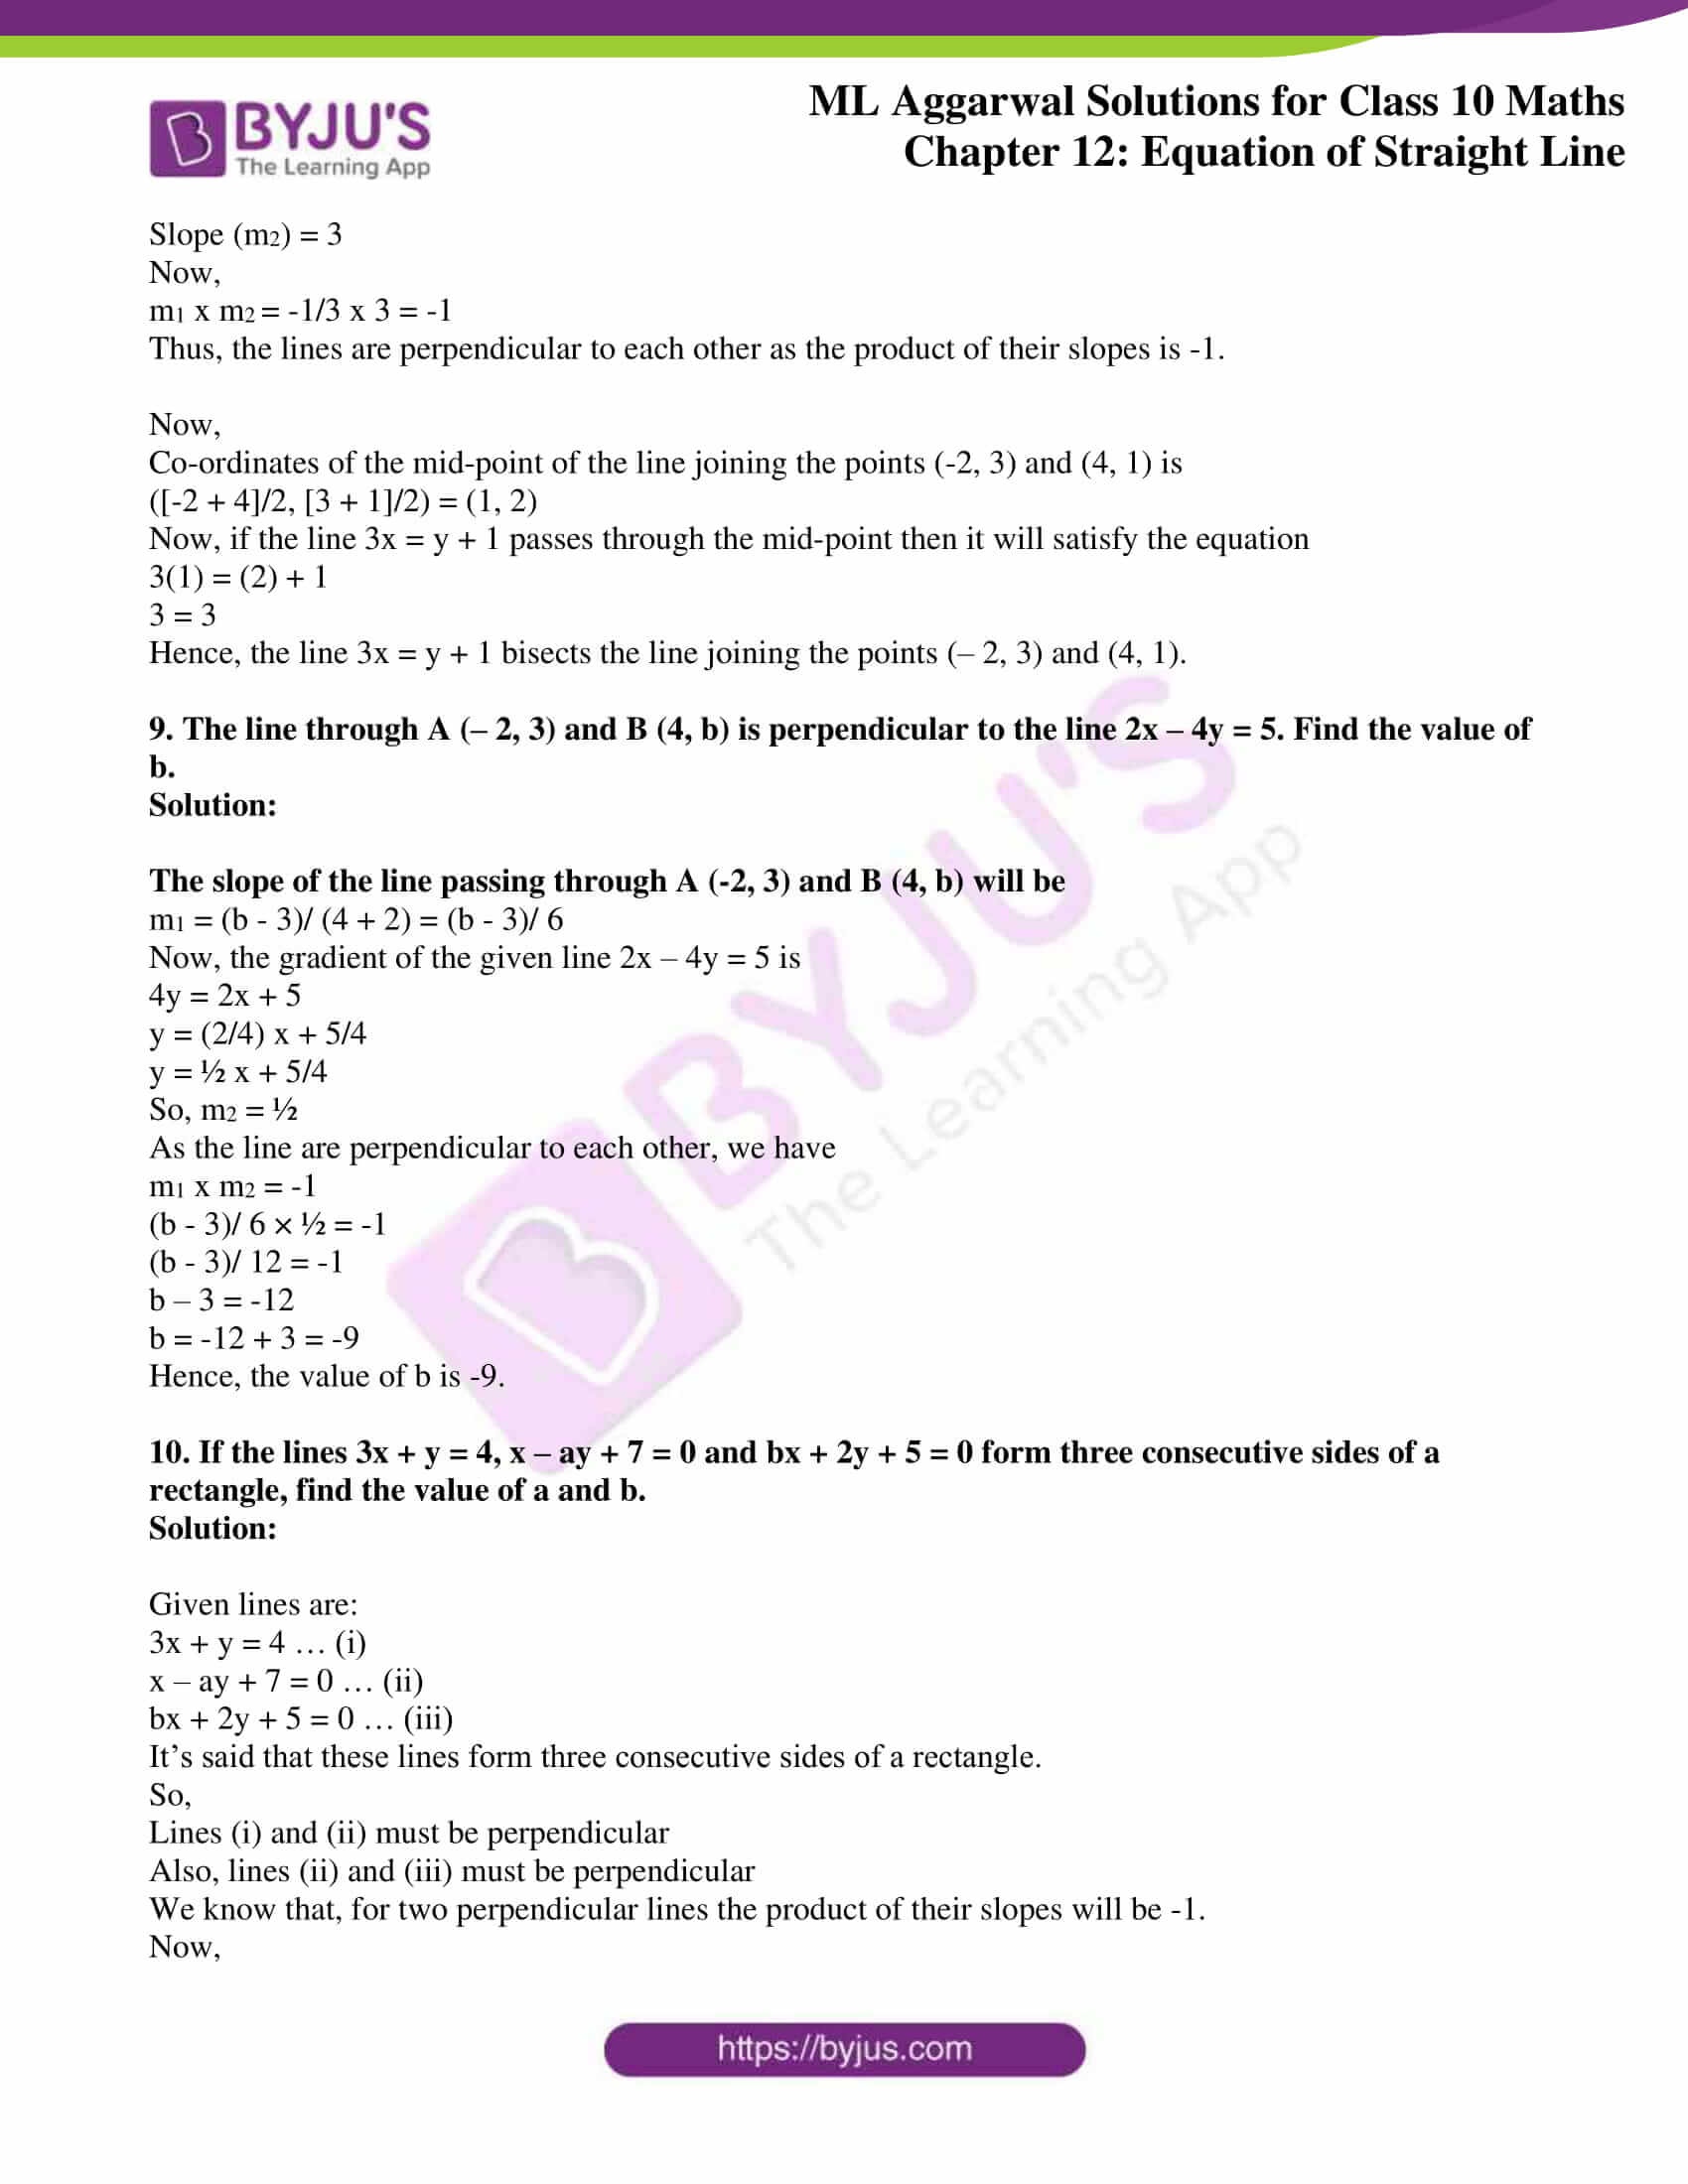 ml aggarwal solutions for class 10 maths chapter 12 18